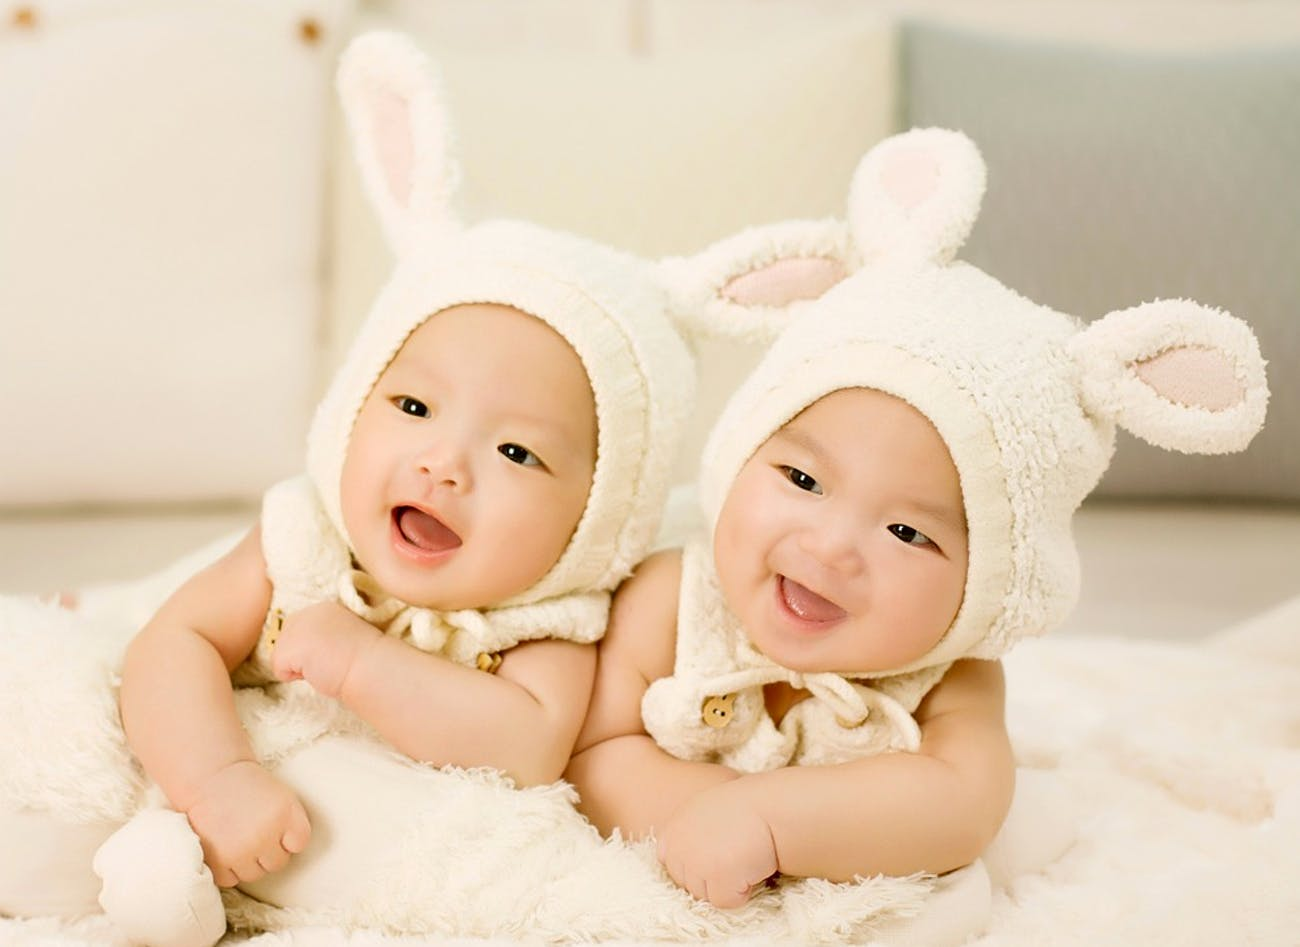 A pair of baby twins.